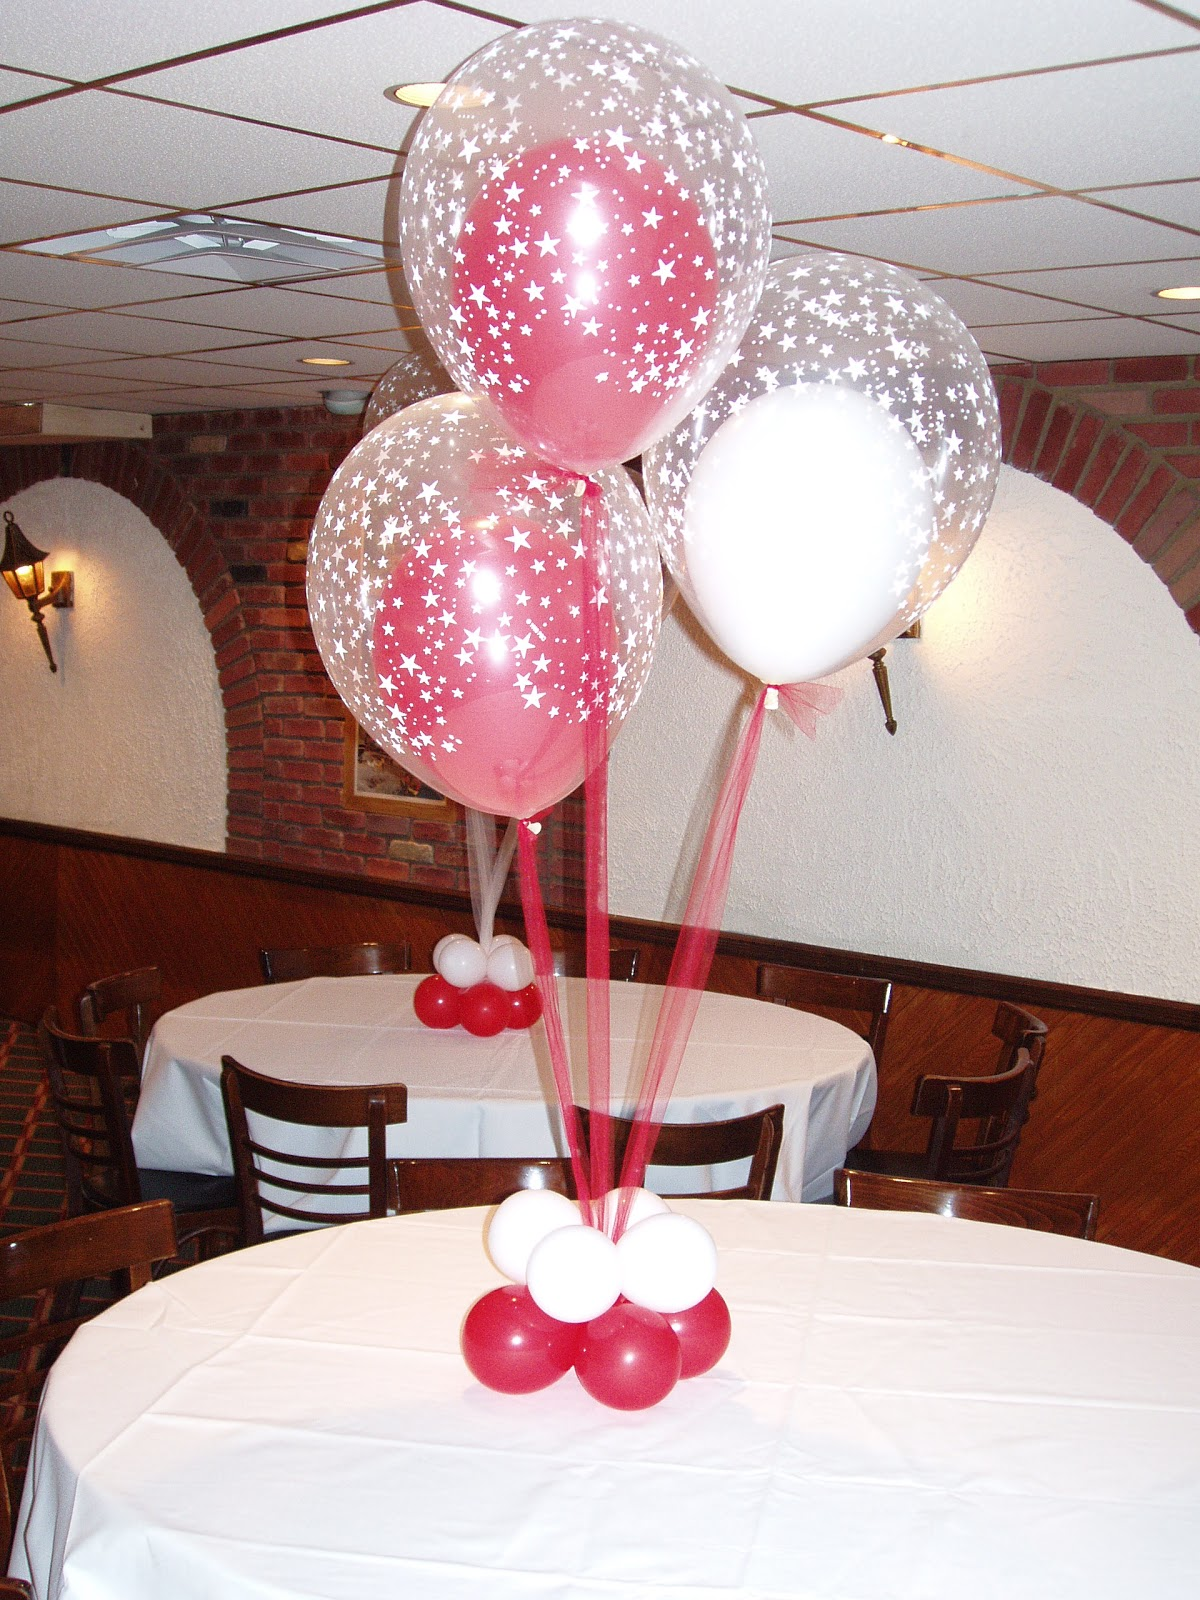 Balloon Designs Pictures: Balloon Decor